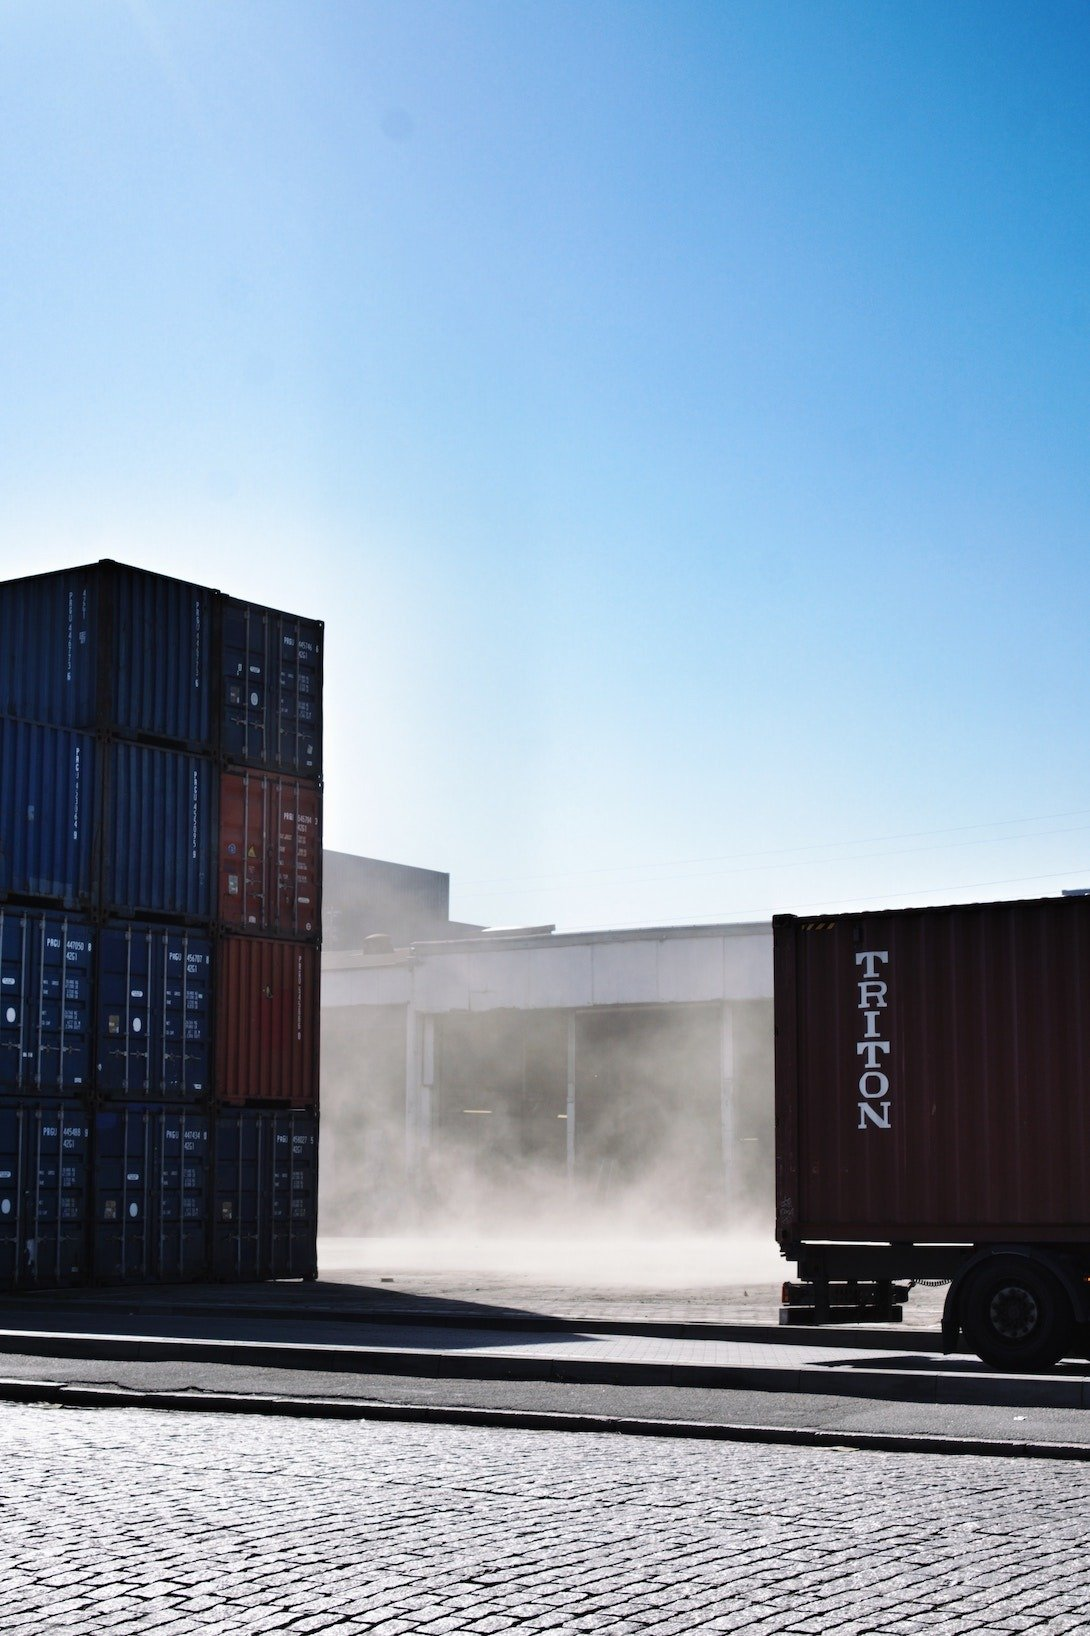 containers on a truck to avoid demurrage charges